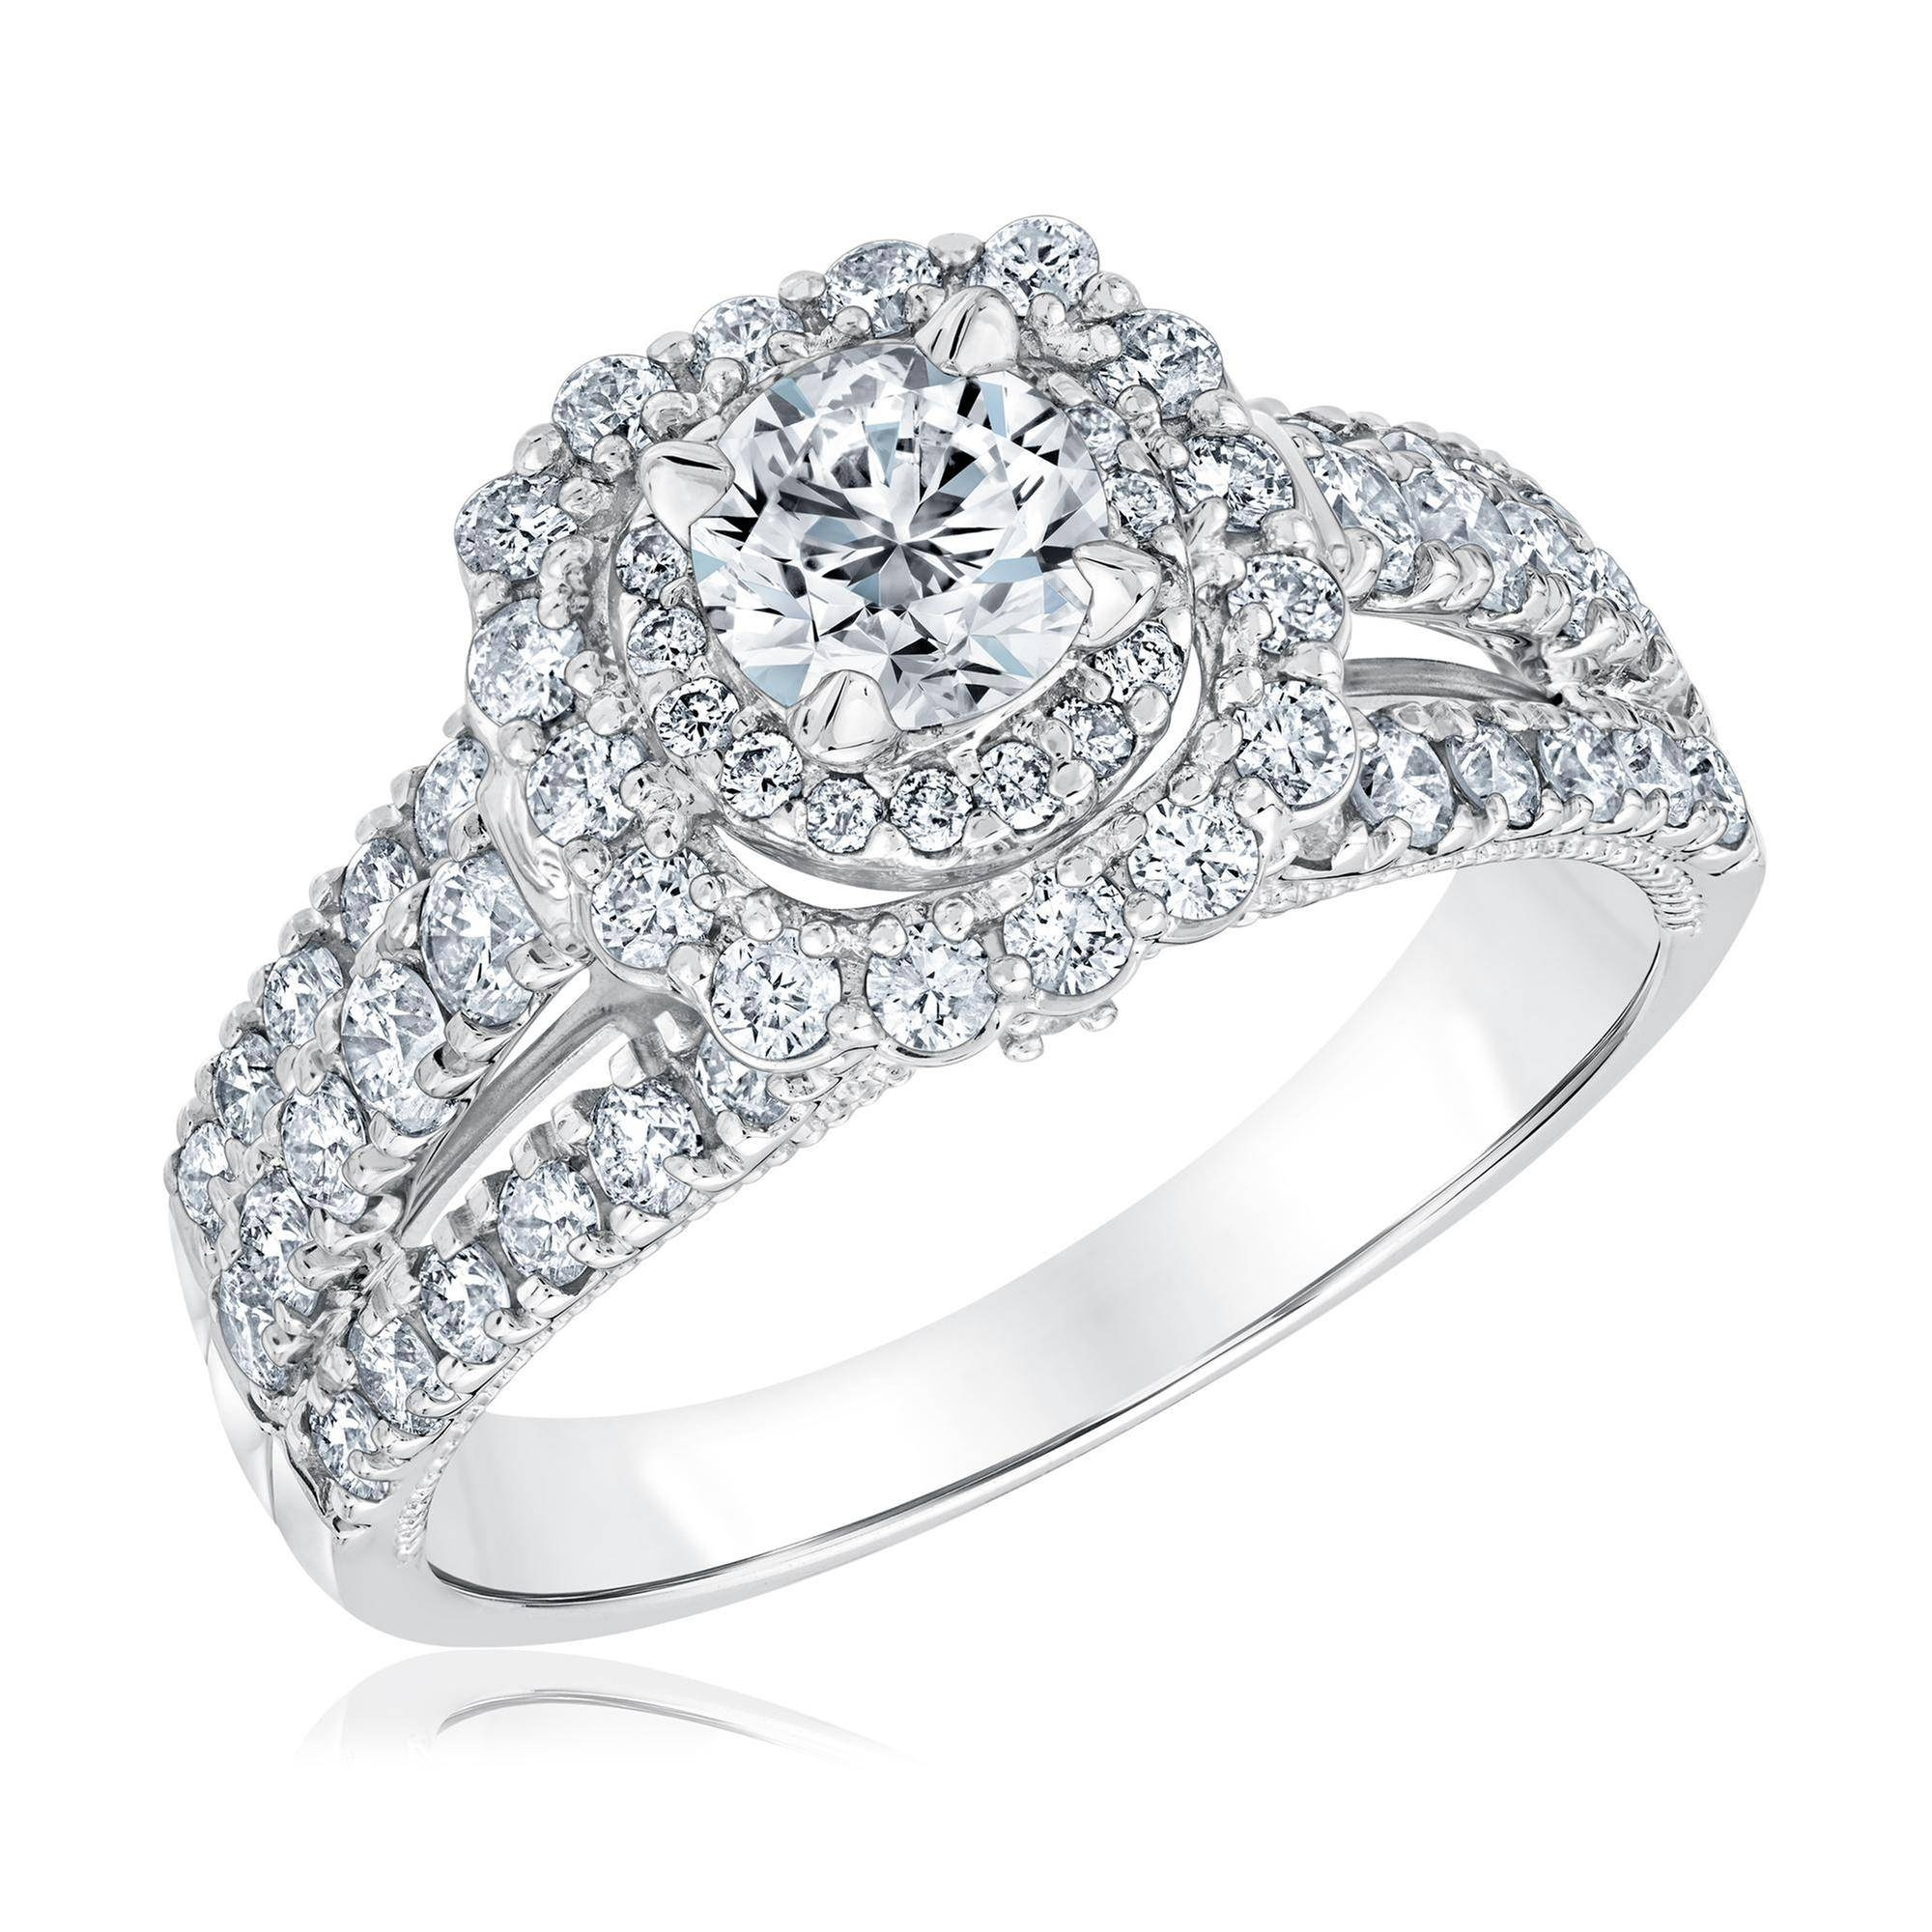 Engagement Rings Page 1 | Reeds Jewelers In Most Recent 3 Stone Anniversary Rings (View 7 of 25)